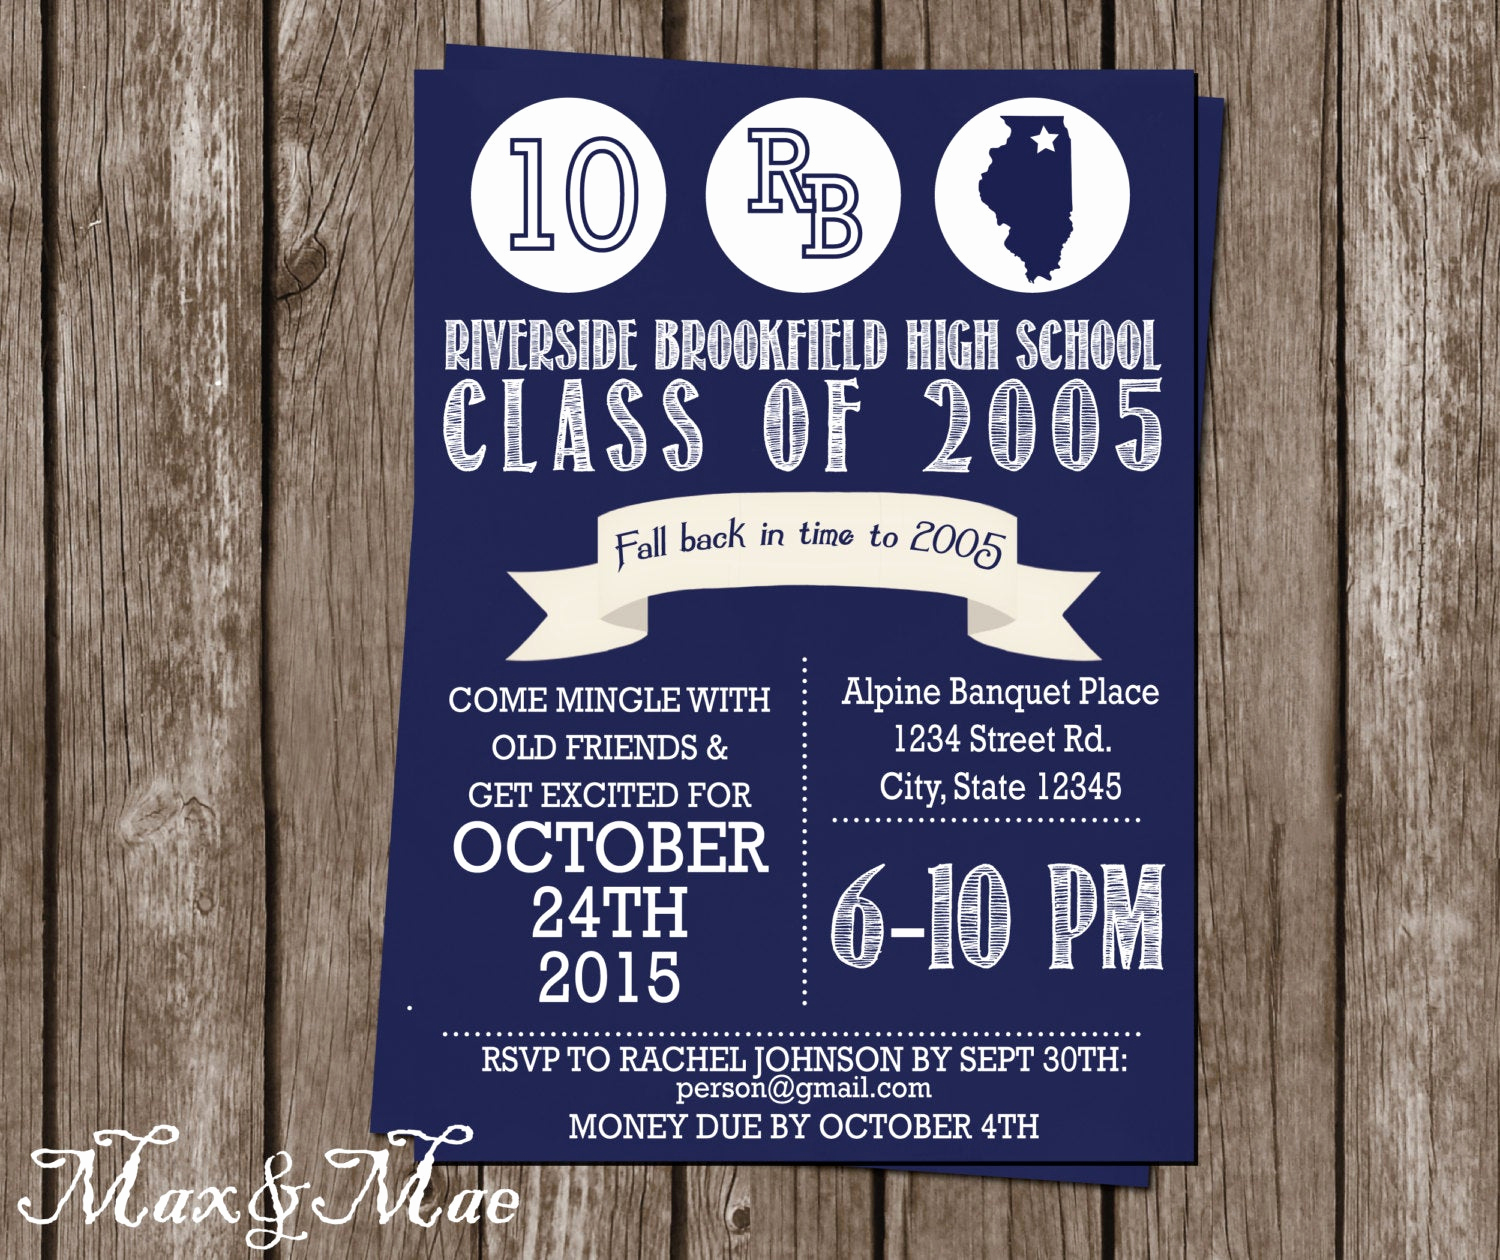 10 Year Reunion Invitation Fresh High School Reunion Invitation College Reunion Class Of